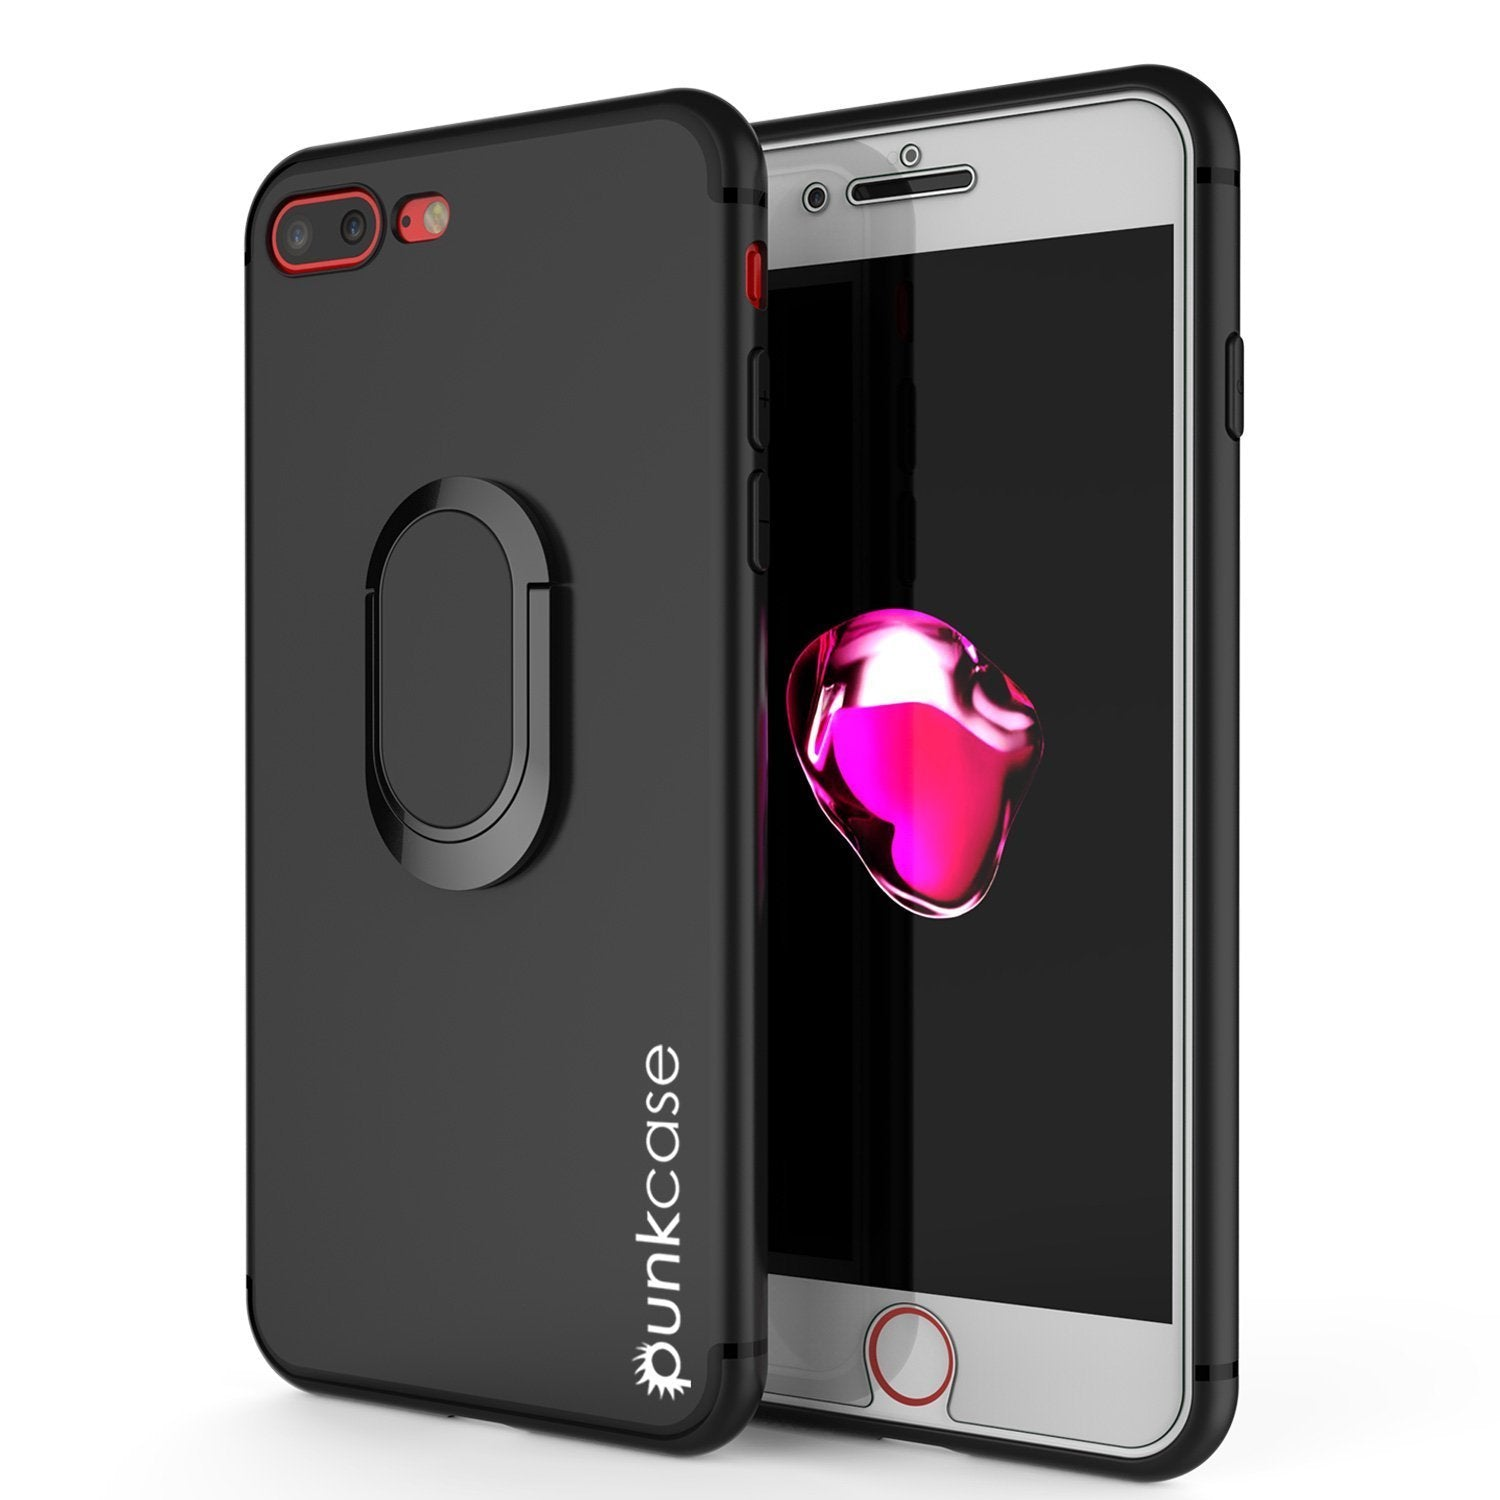 iPhone 8 Plus Case, Punkcase Magnetix Protective TPU Cover W/ Kickstand, Ring Grip Holder & Metal Plate for Magnetic Car Phone Mount PLUS Tempered Glass Screen Protector for Apple iPhone 7+/8+ [Black]